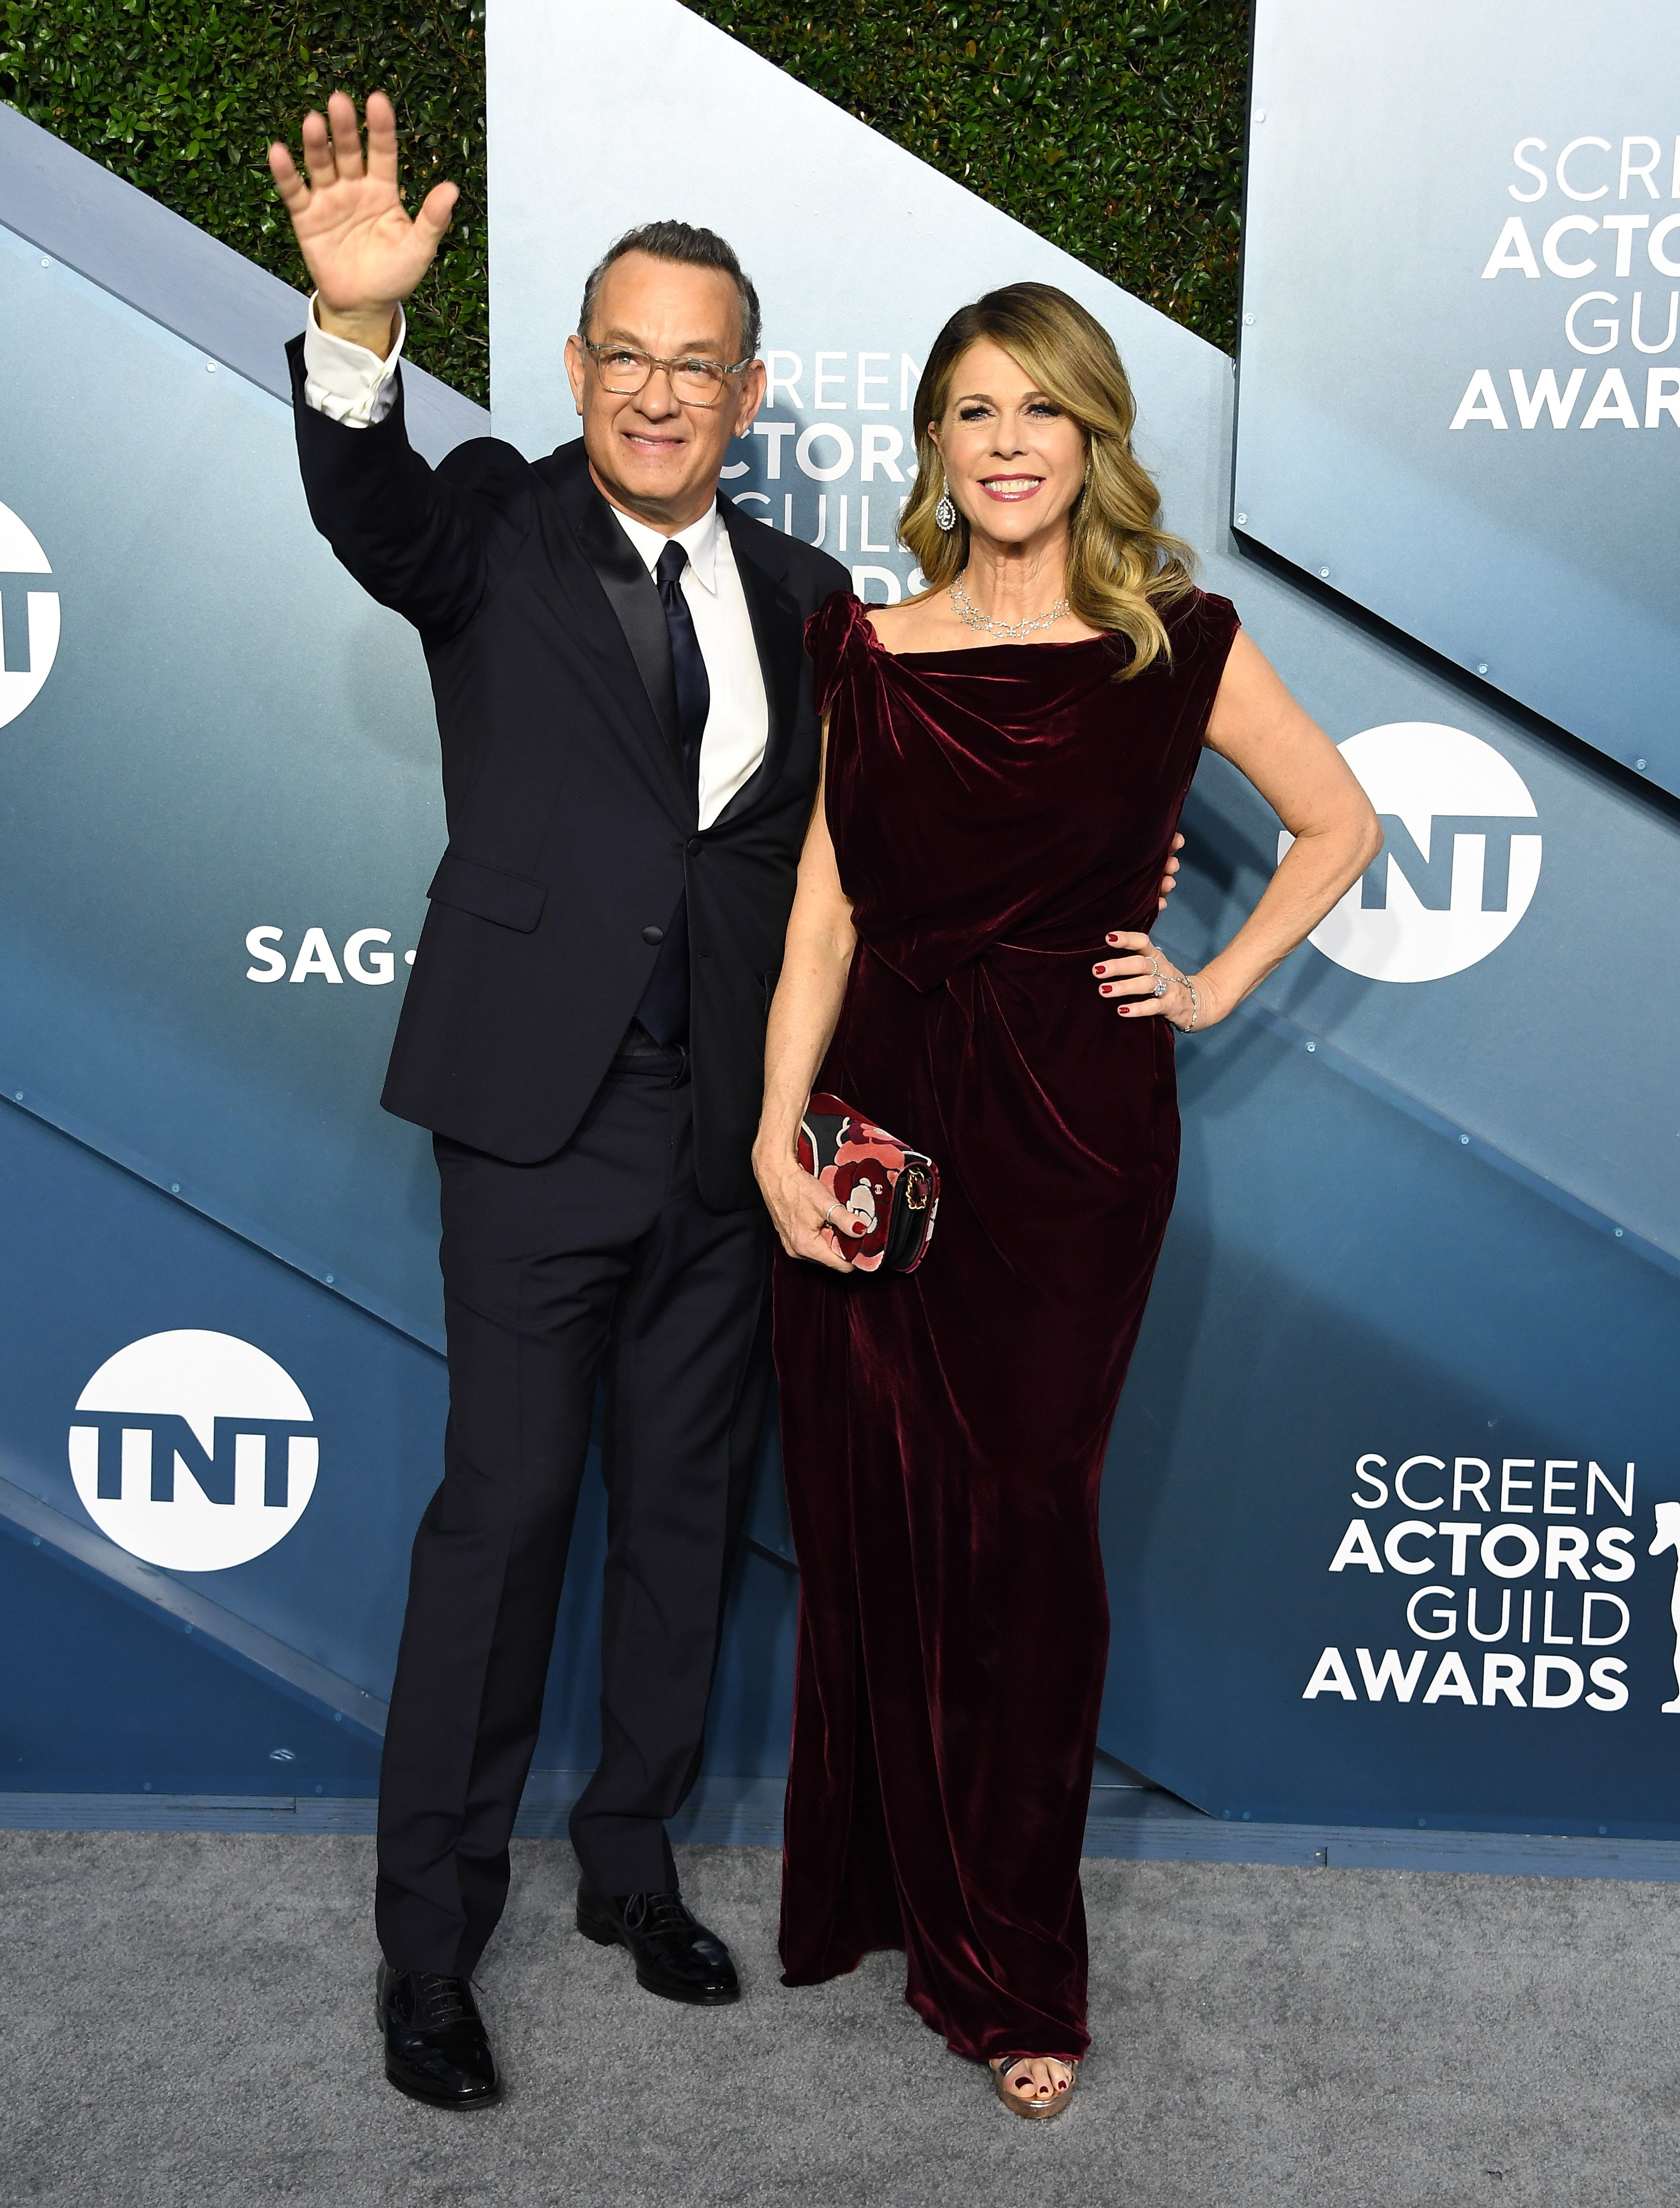 Tom Hanks and Rita Wilson arrives at the 26th Annual Screen ActorsGuild Awards on January 19, 2020, in Los Angeles, California.   Source: Getty Images.